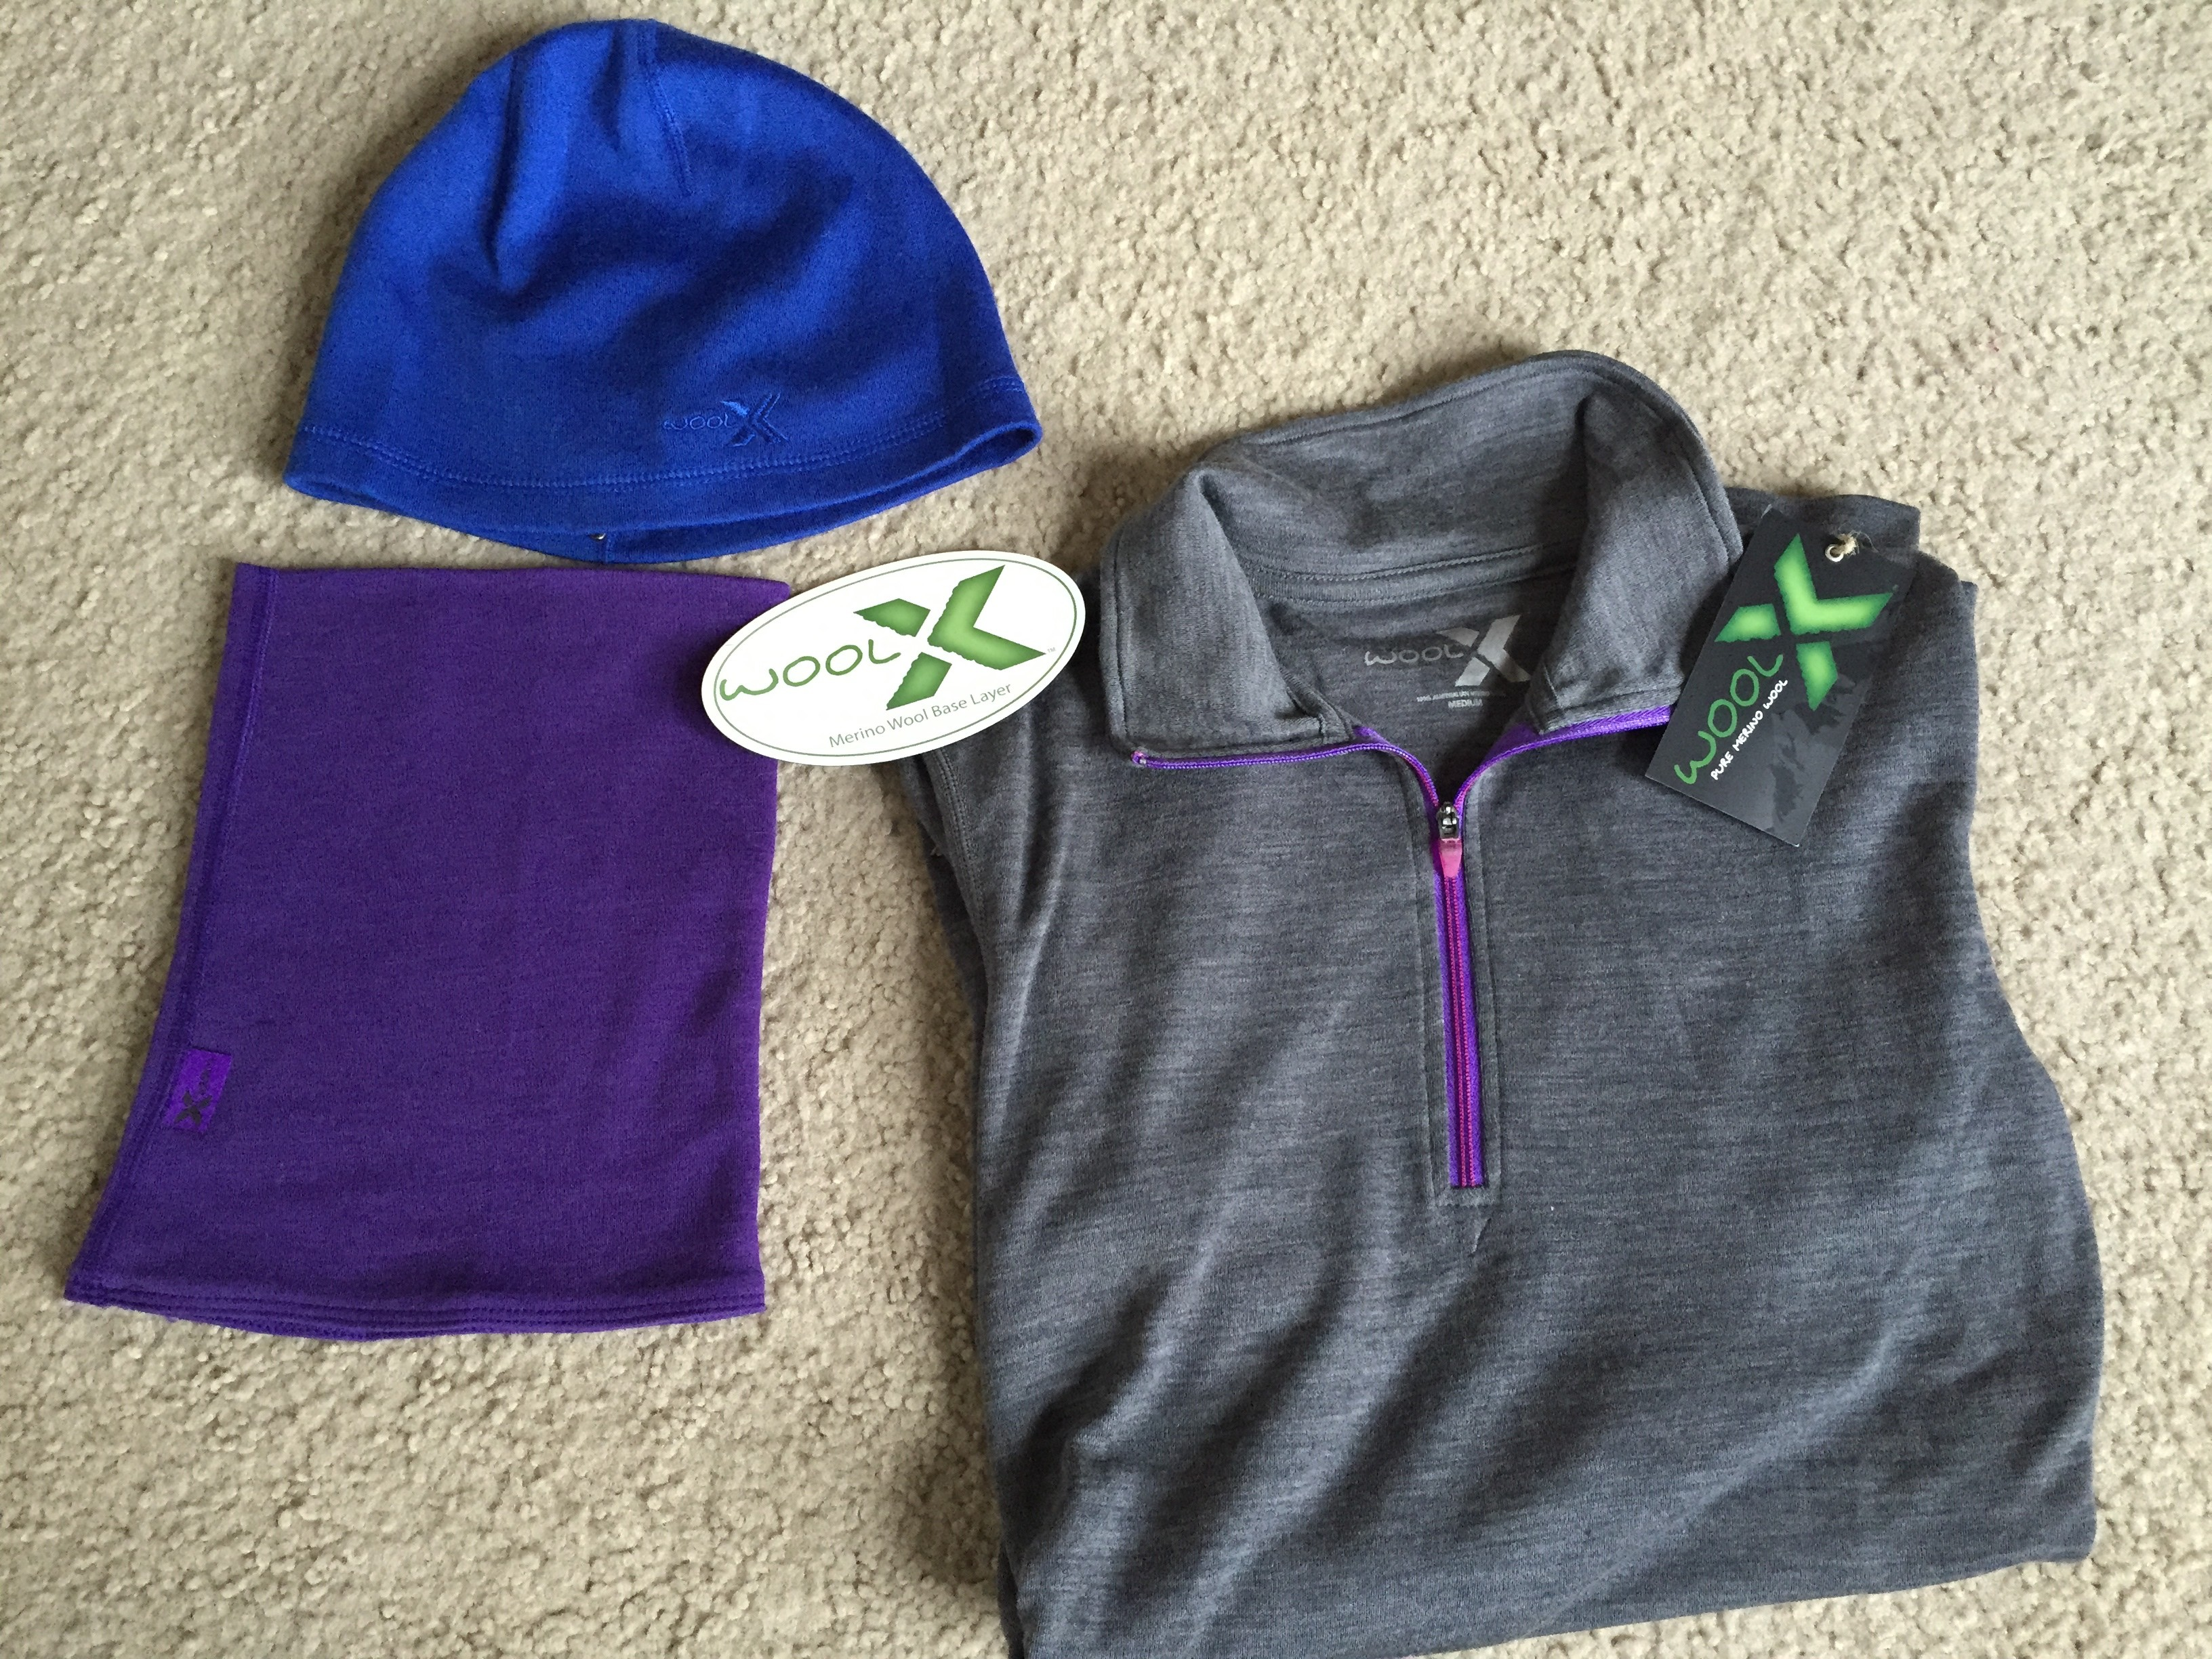 Woolx Merino Wool Gear